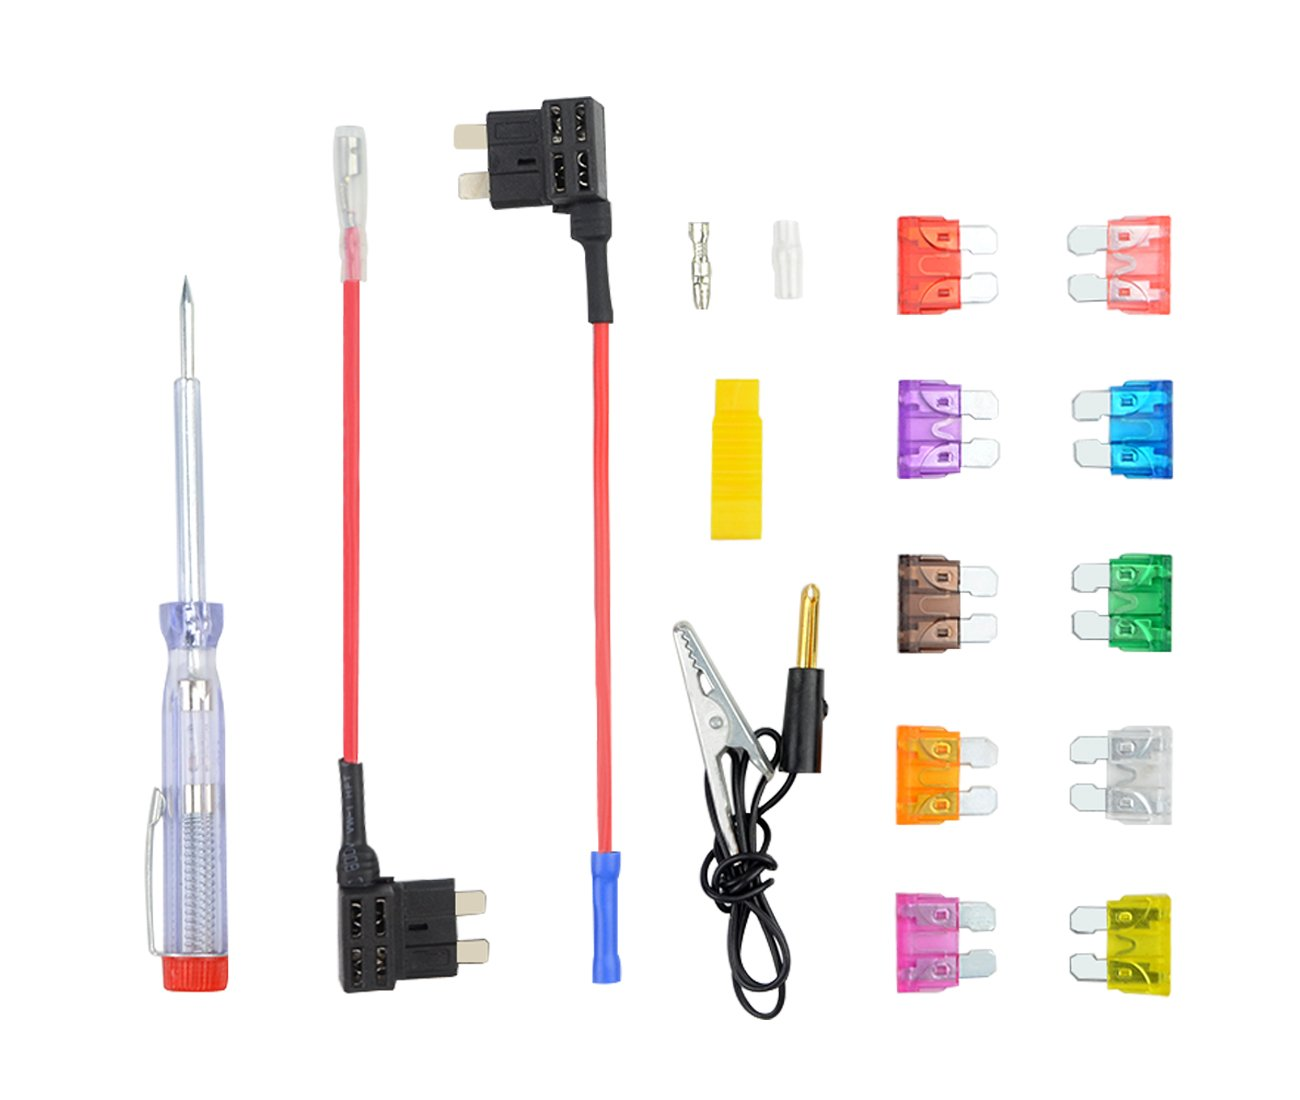 Auto Circuit Tester WGCD 100 PCS Car Truck Standard Blade Fuse Assortment Add Circuit Tap Adapter Bullet Terminal Connector for Boat Truck SUV Automotive Replacement